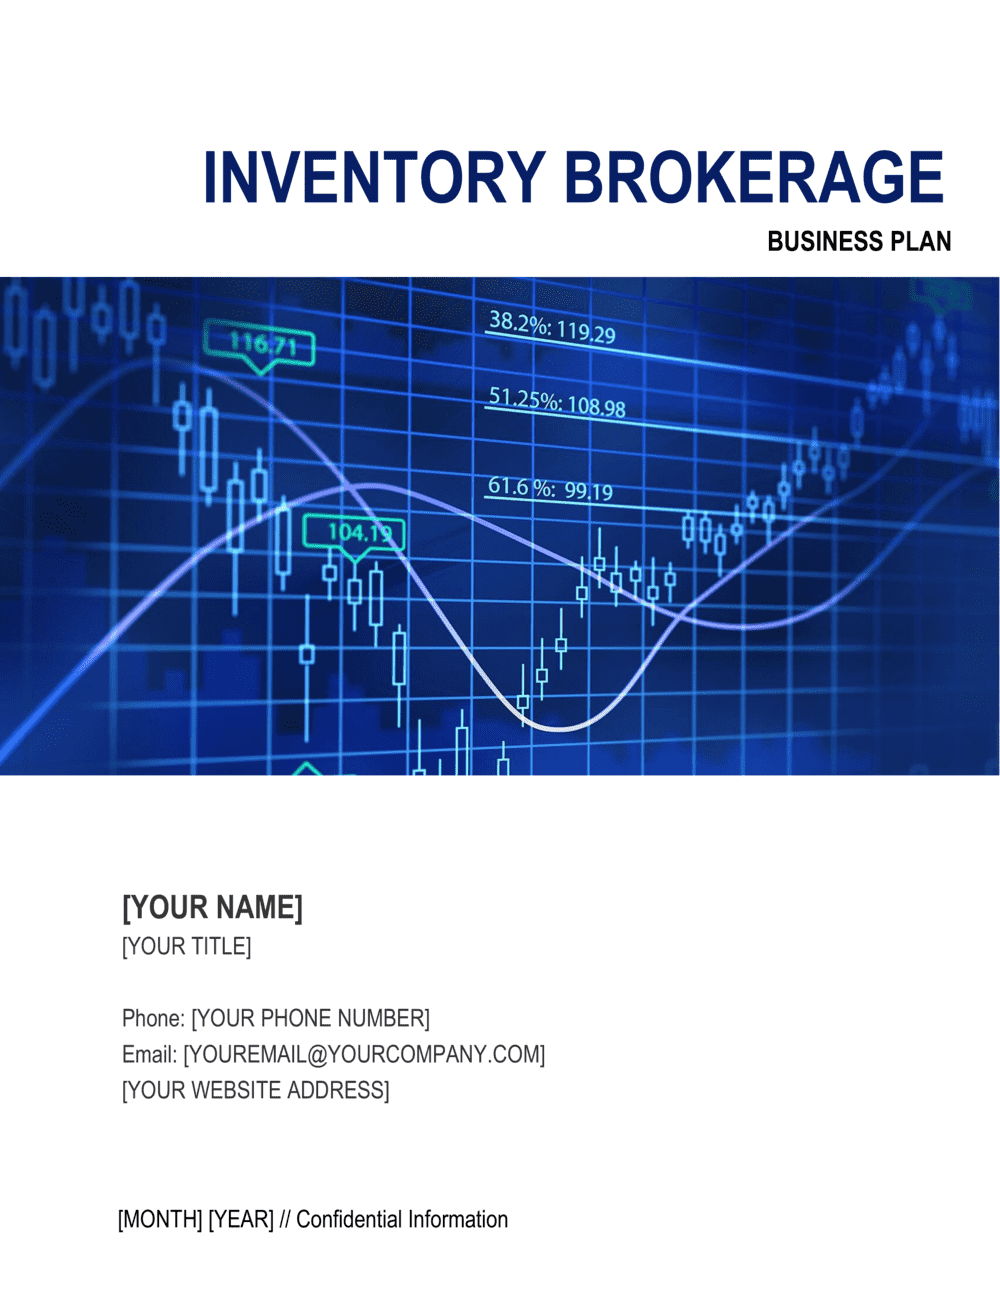 Business-in-a-Box's Inventory Brokerage Firm Business Plan Template